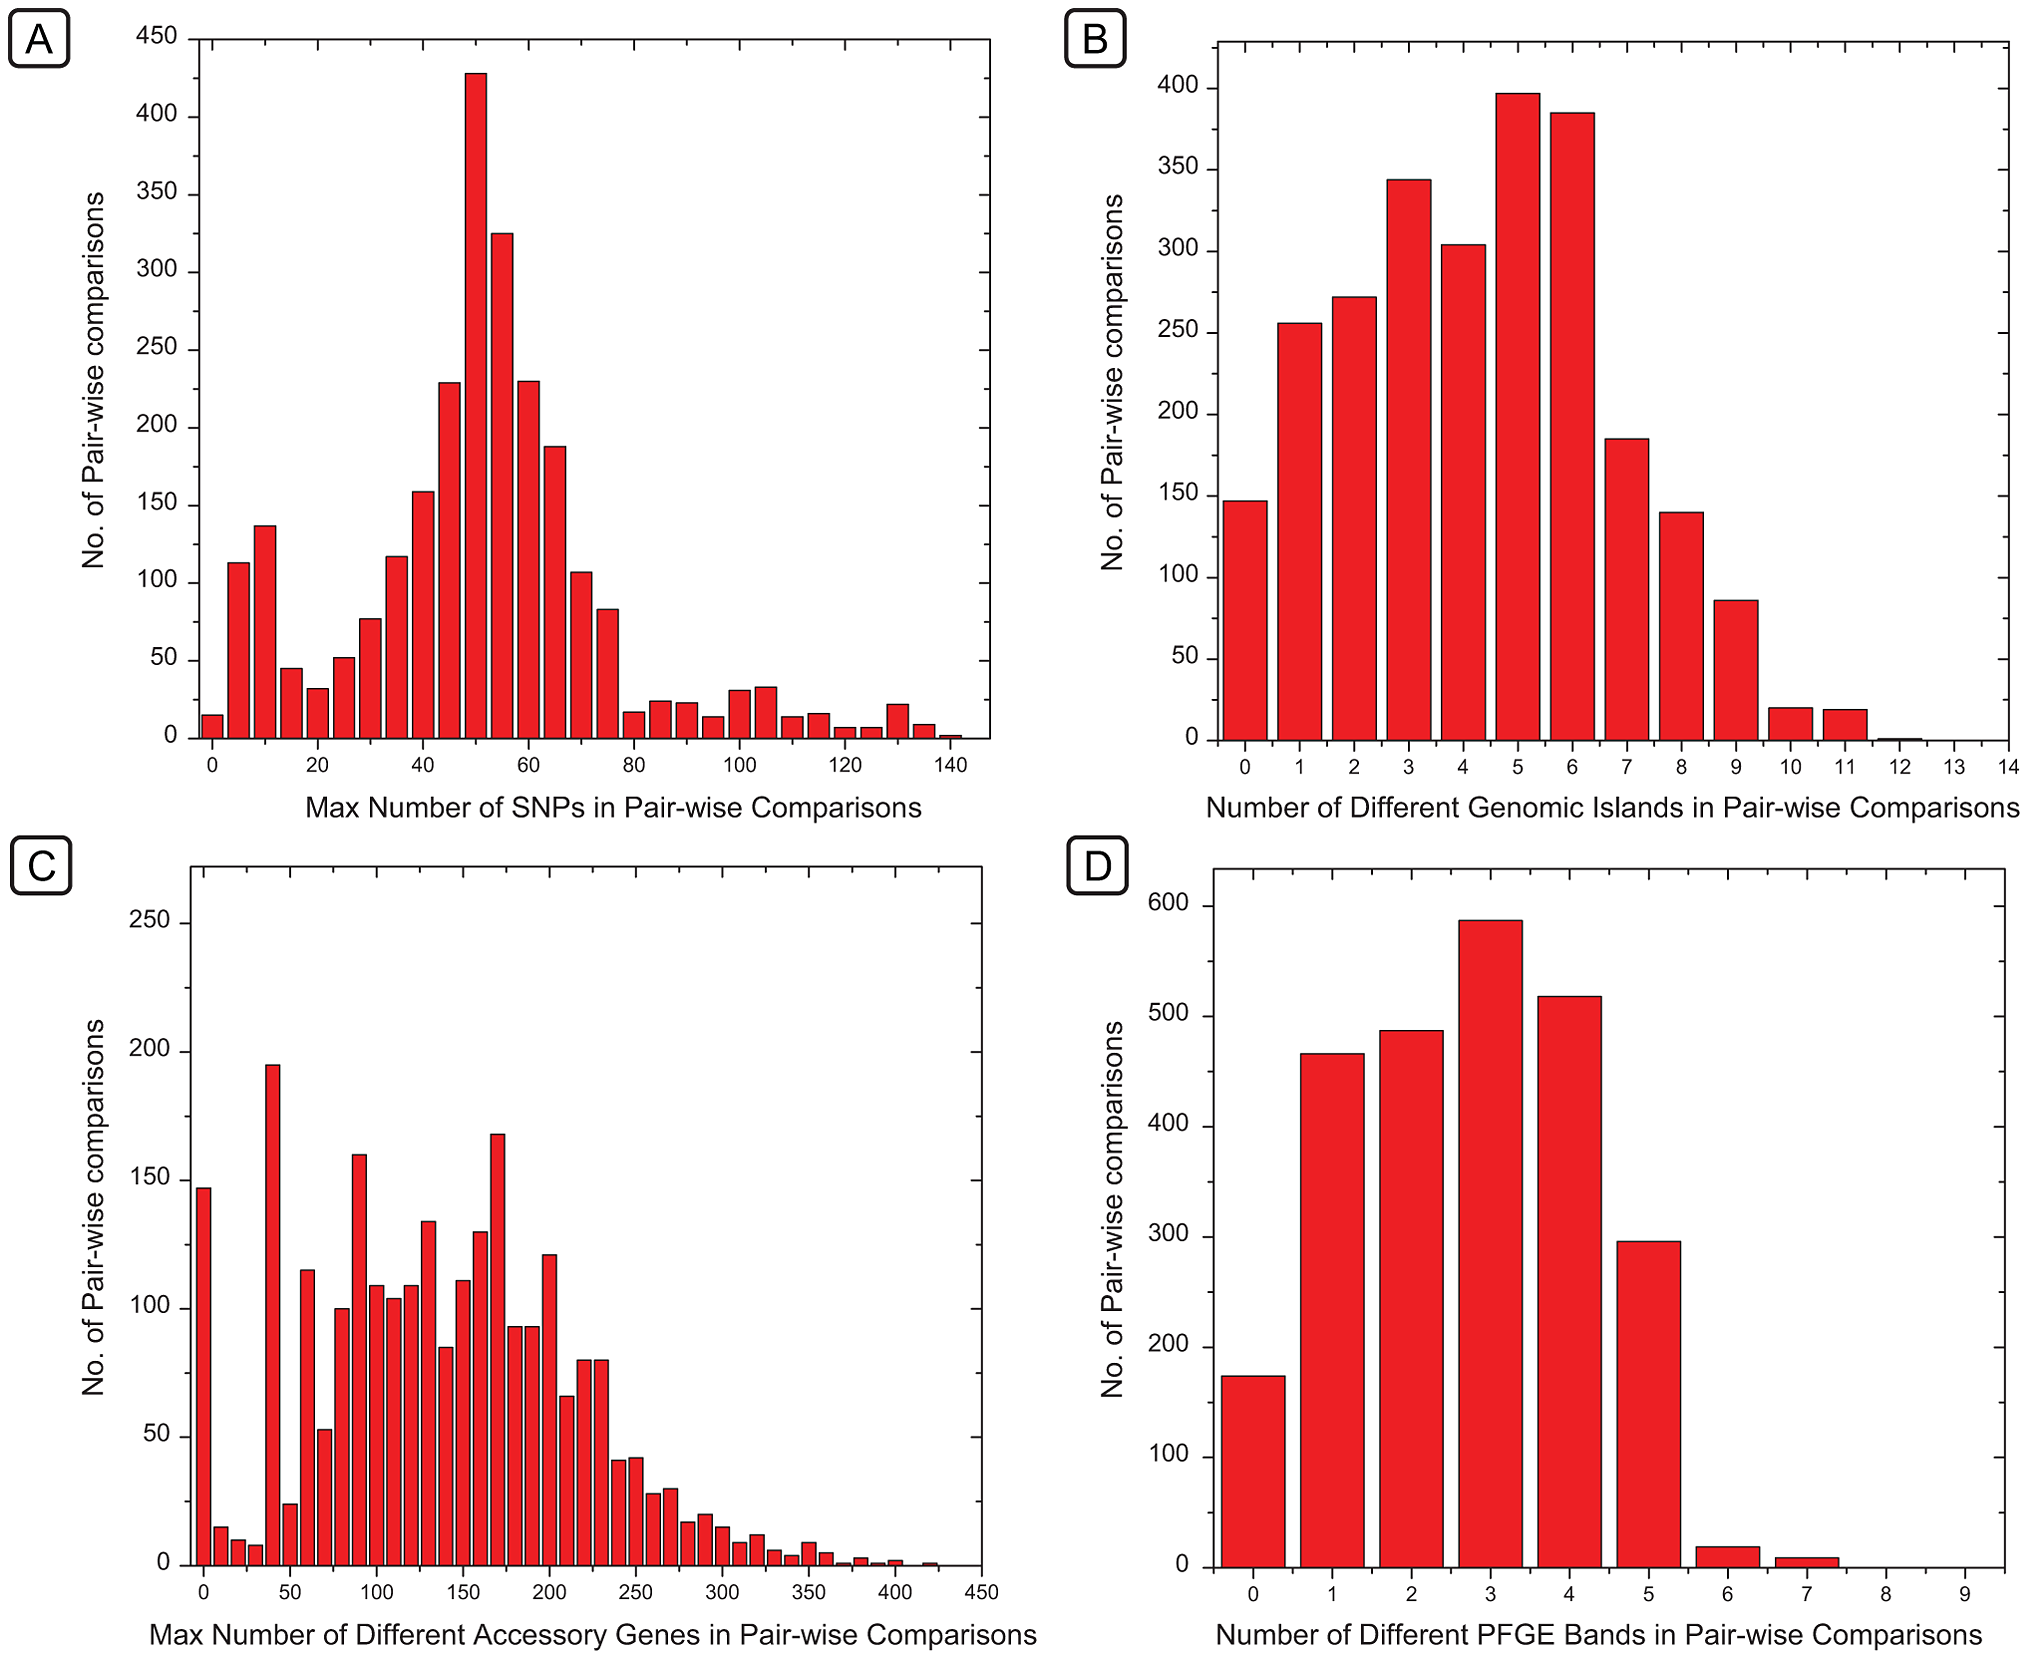 Histograms of the frequencies of numbers of differences between pairs of genomes in SNPs, genomic islands, accessory genes, or PFGE bands.